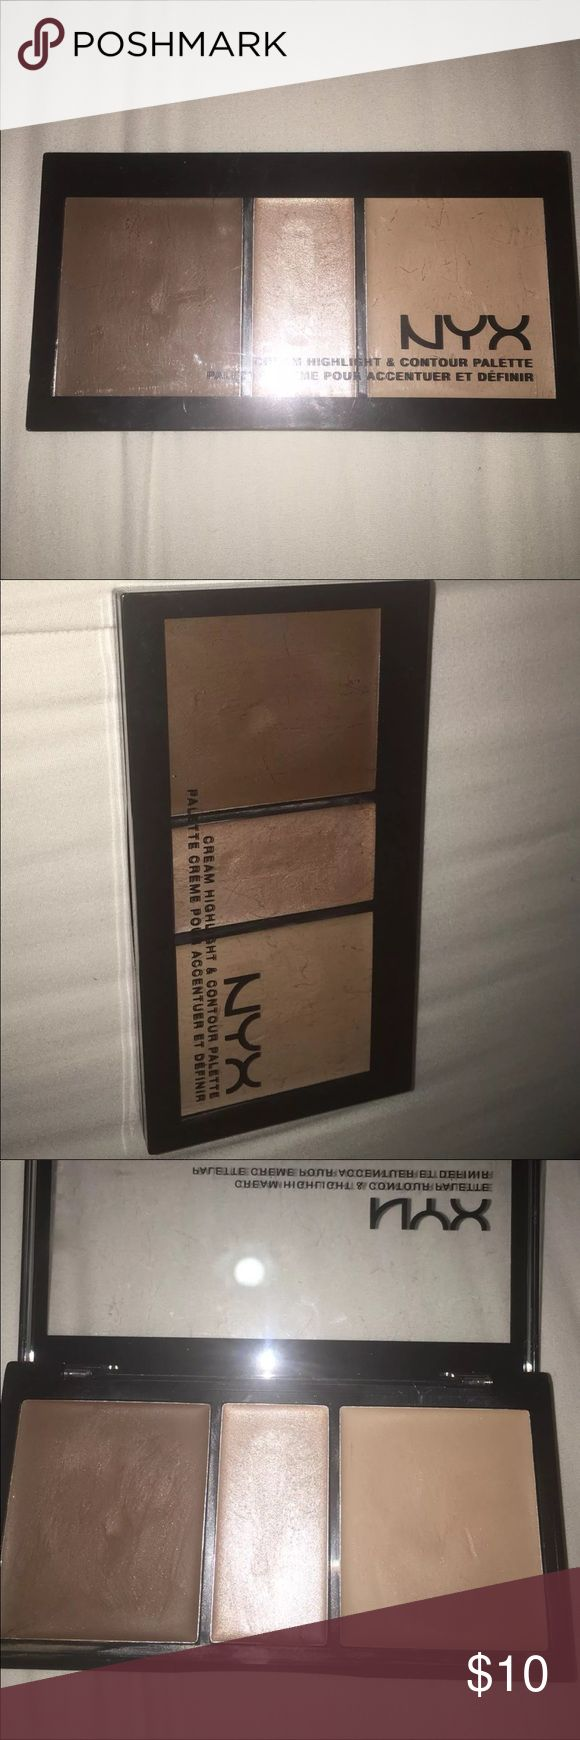 🎉🎊 NYX Cream Highlight & Contour Kit Very nice cream contour palette from NYX. Gently used. I'd recommend applying with a beauty blender. Gives a nice contoured face without being oily although it's creamy. Super pretty. Medium color. Will sanitize!!! NYX Cosmetics Makeup Luminizer